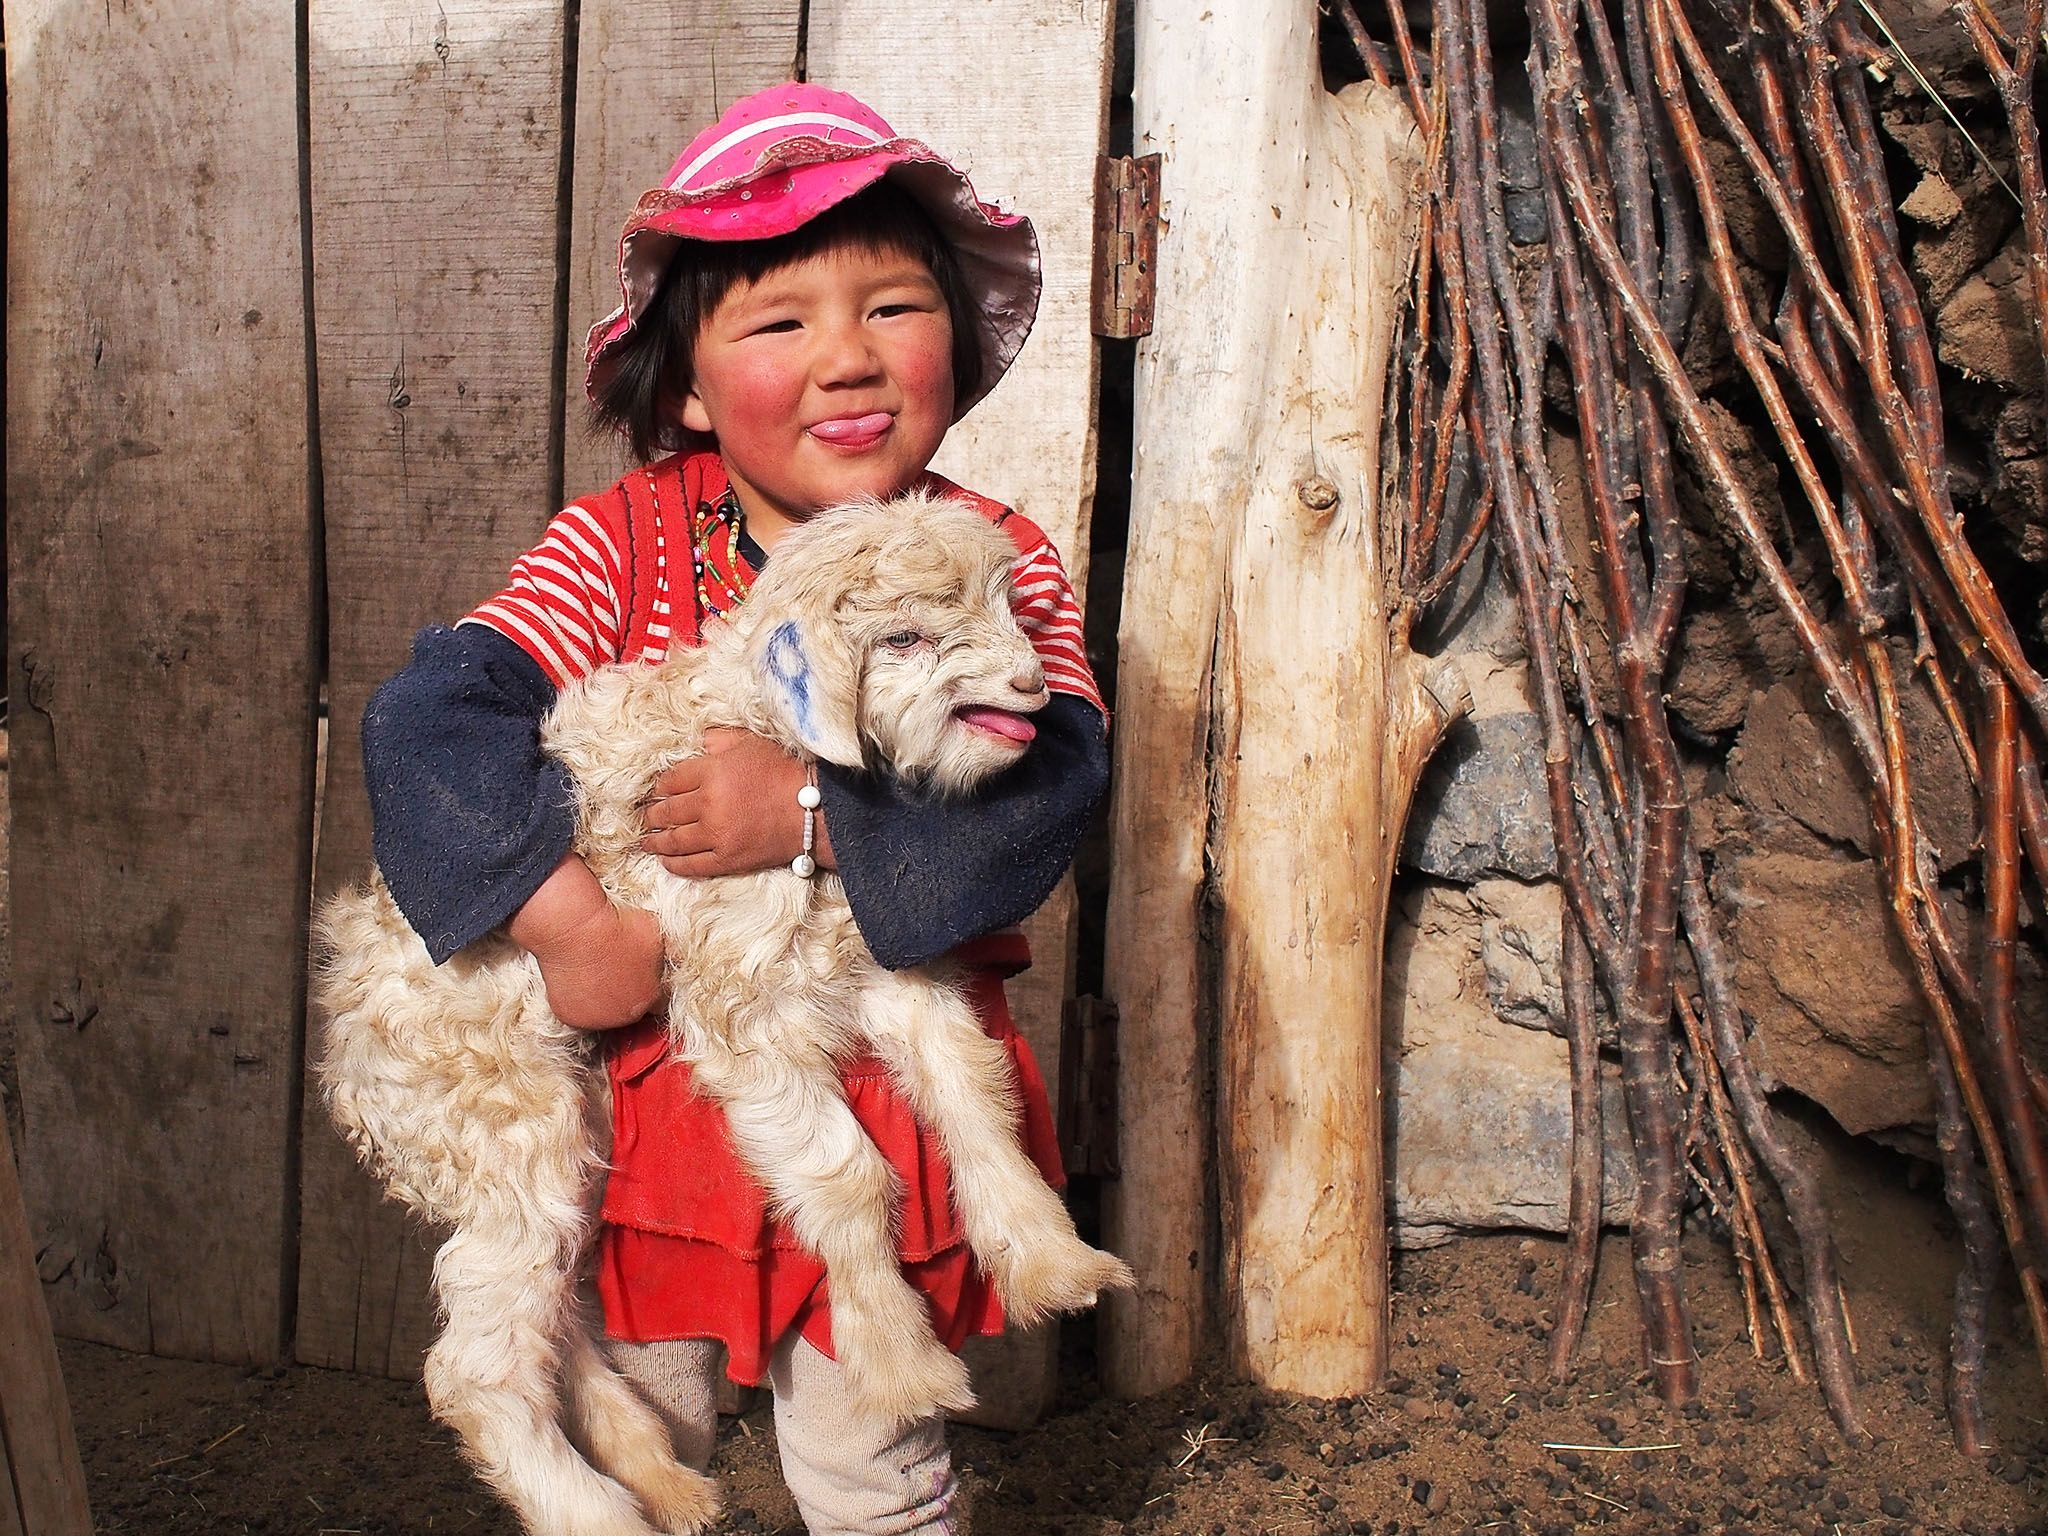 Macan's granddaughter playing with a lamb in the pen. Macan, a master falconer, teaches his son... [Photo of the day - اگوست 2015]